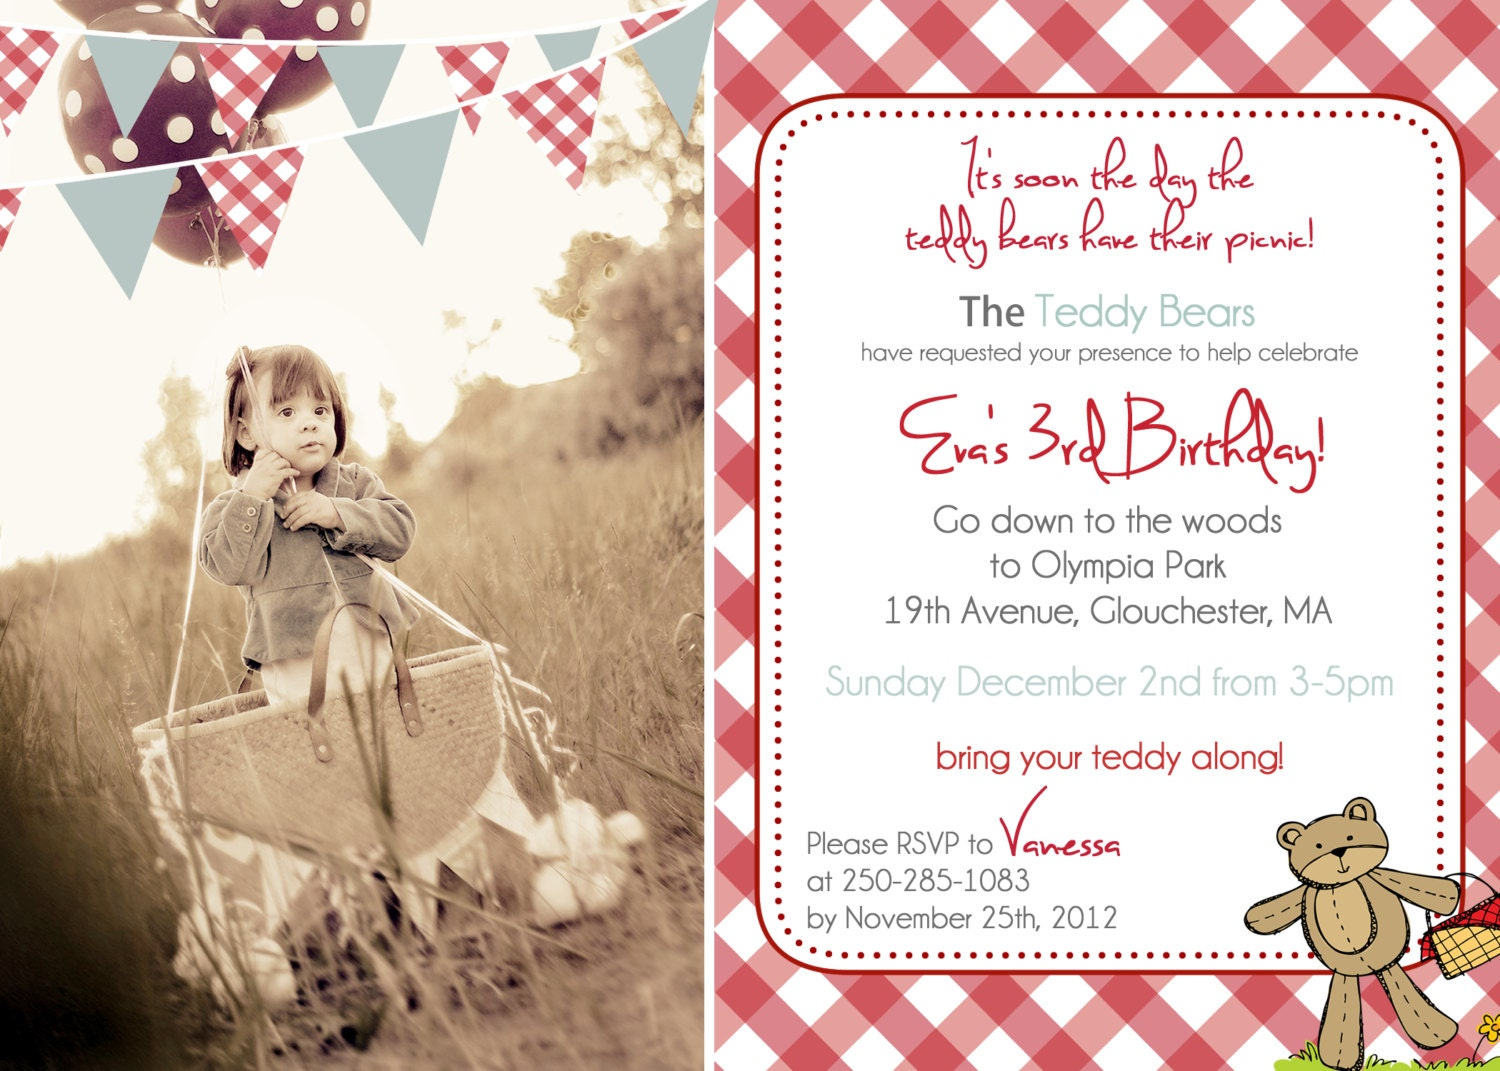 Teddy Bear Invites was adorable invitations template